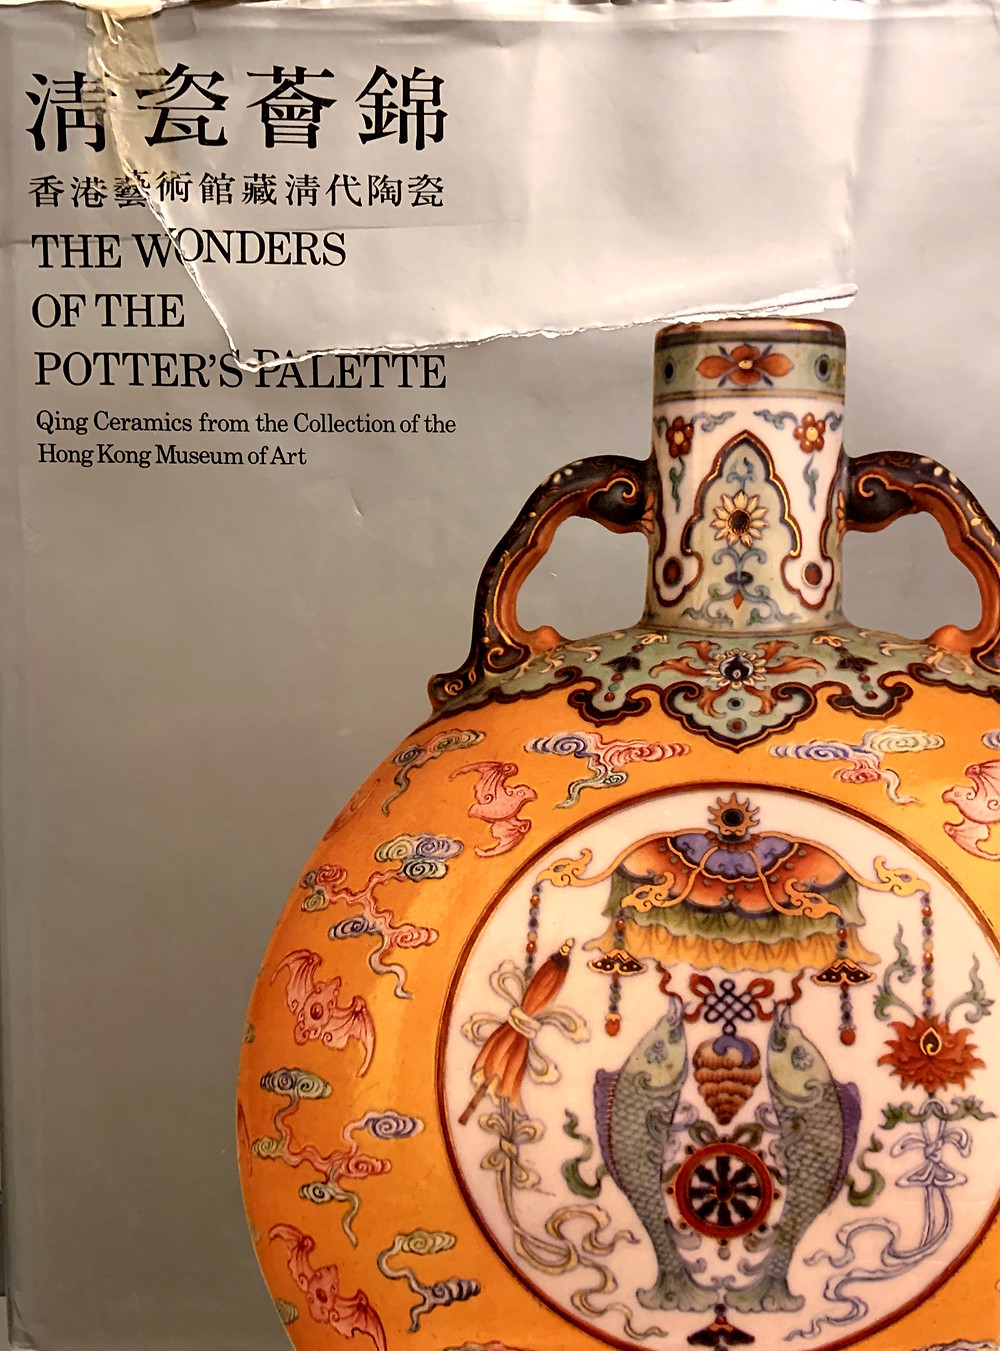 The Wonders of the Potter's Palette: Qing Ceramics from the Collection of the Hong Kong Museum of Art